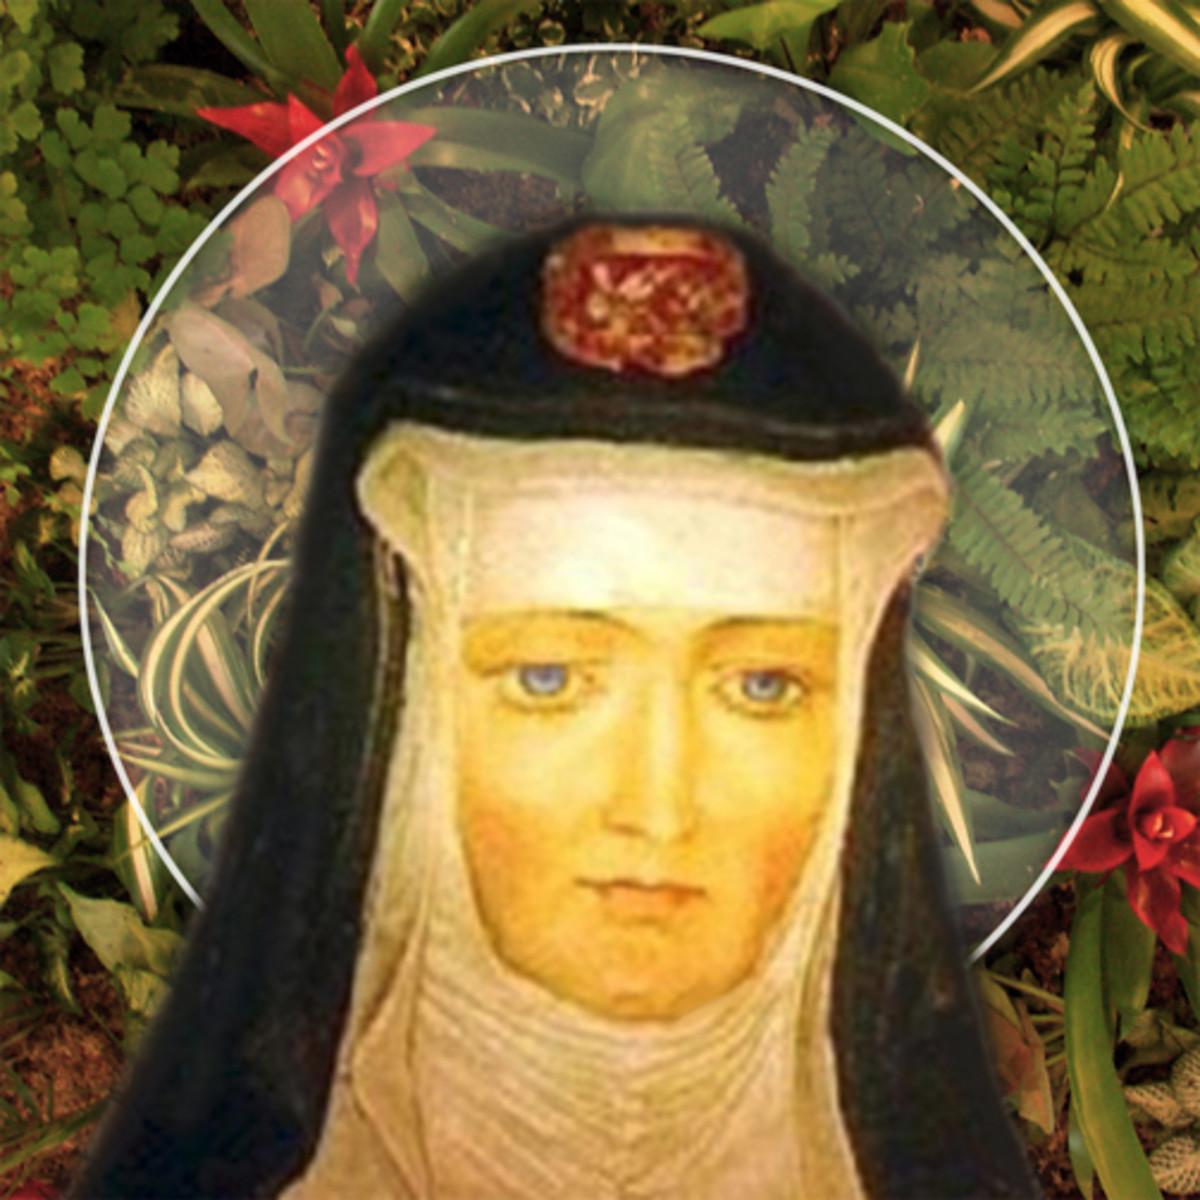 St. Hildegard of Bingen: Medieval Superwoman?